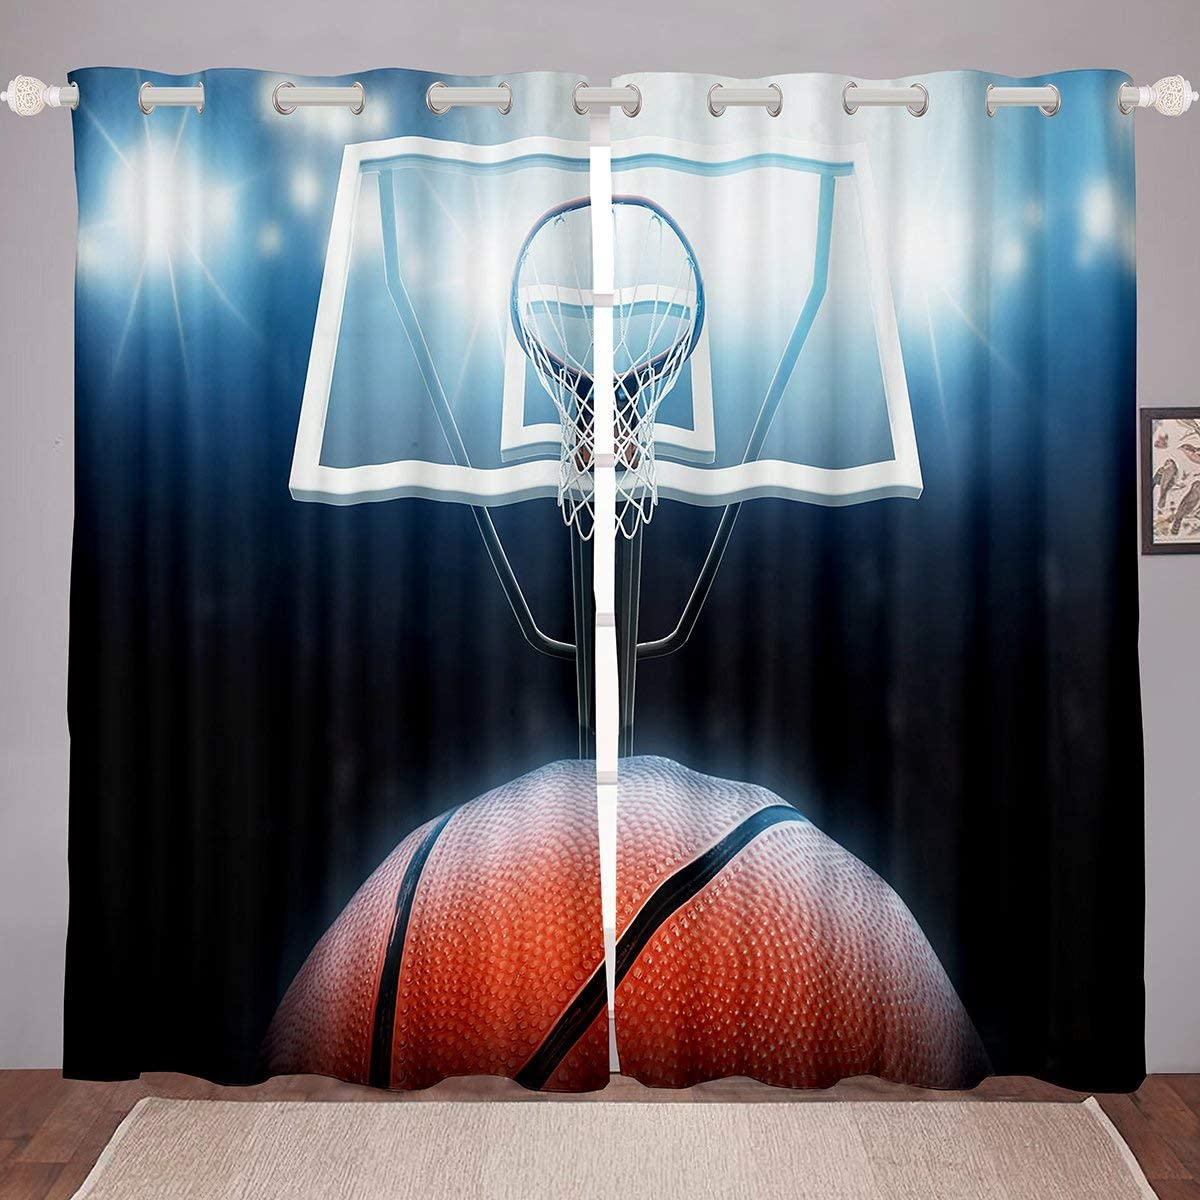 Basketball Window Drapes, Sports Games Window Curtain Panels For Kids Boys Girls Children Basketball Court Curtains, Teens Adult Window Treatment Set Shades For Bedroom Living Room 104